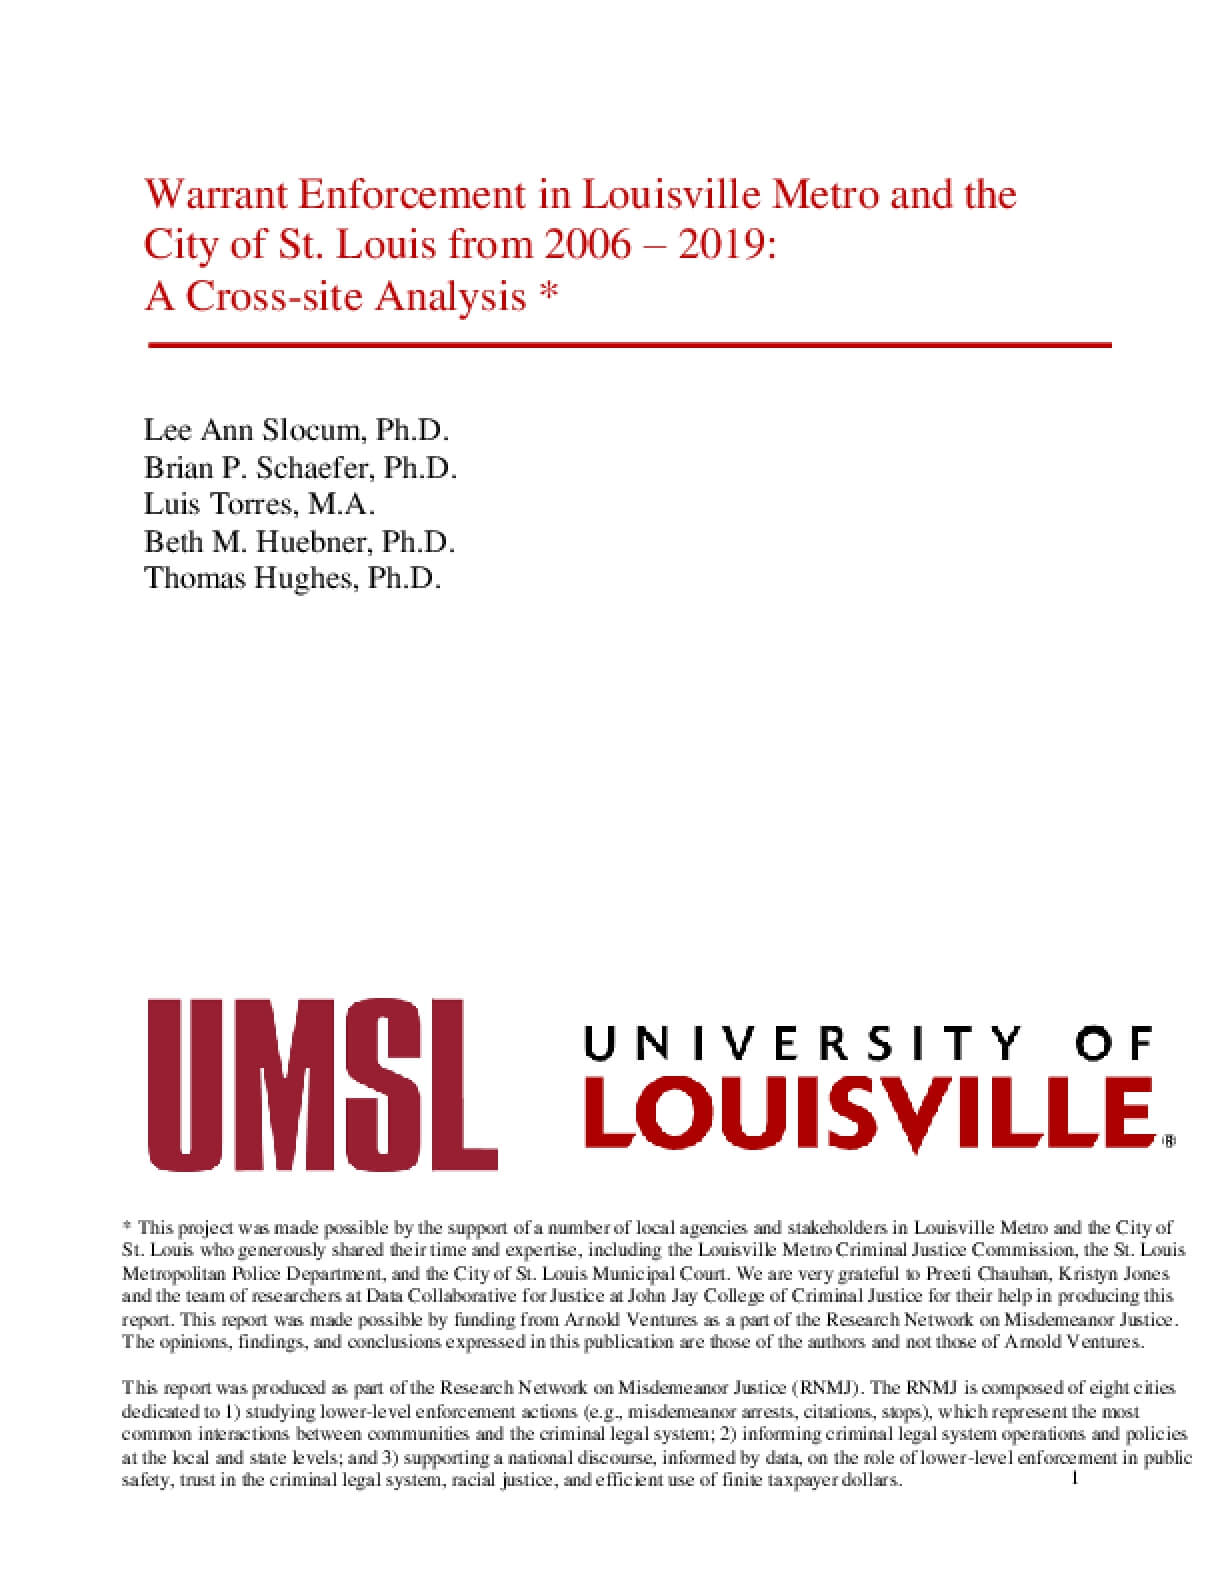 Warrant Enforcement in Louisville Metro and the City of St. Louis from 2006 –2019: A Cross-site Analysis